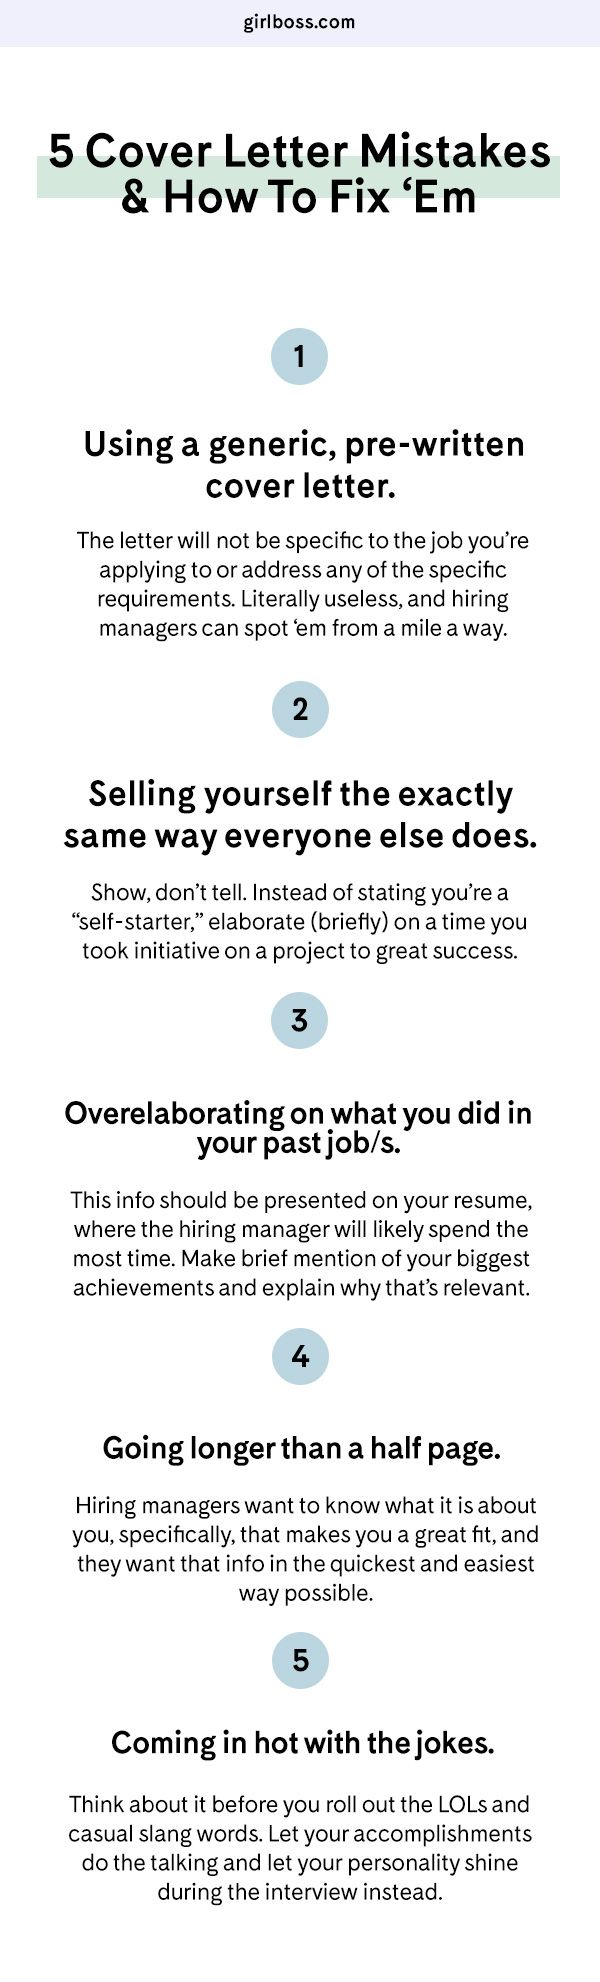 5 Cover Letter Mistakes You Might Be Making (And How To Fix U0027Em)